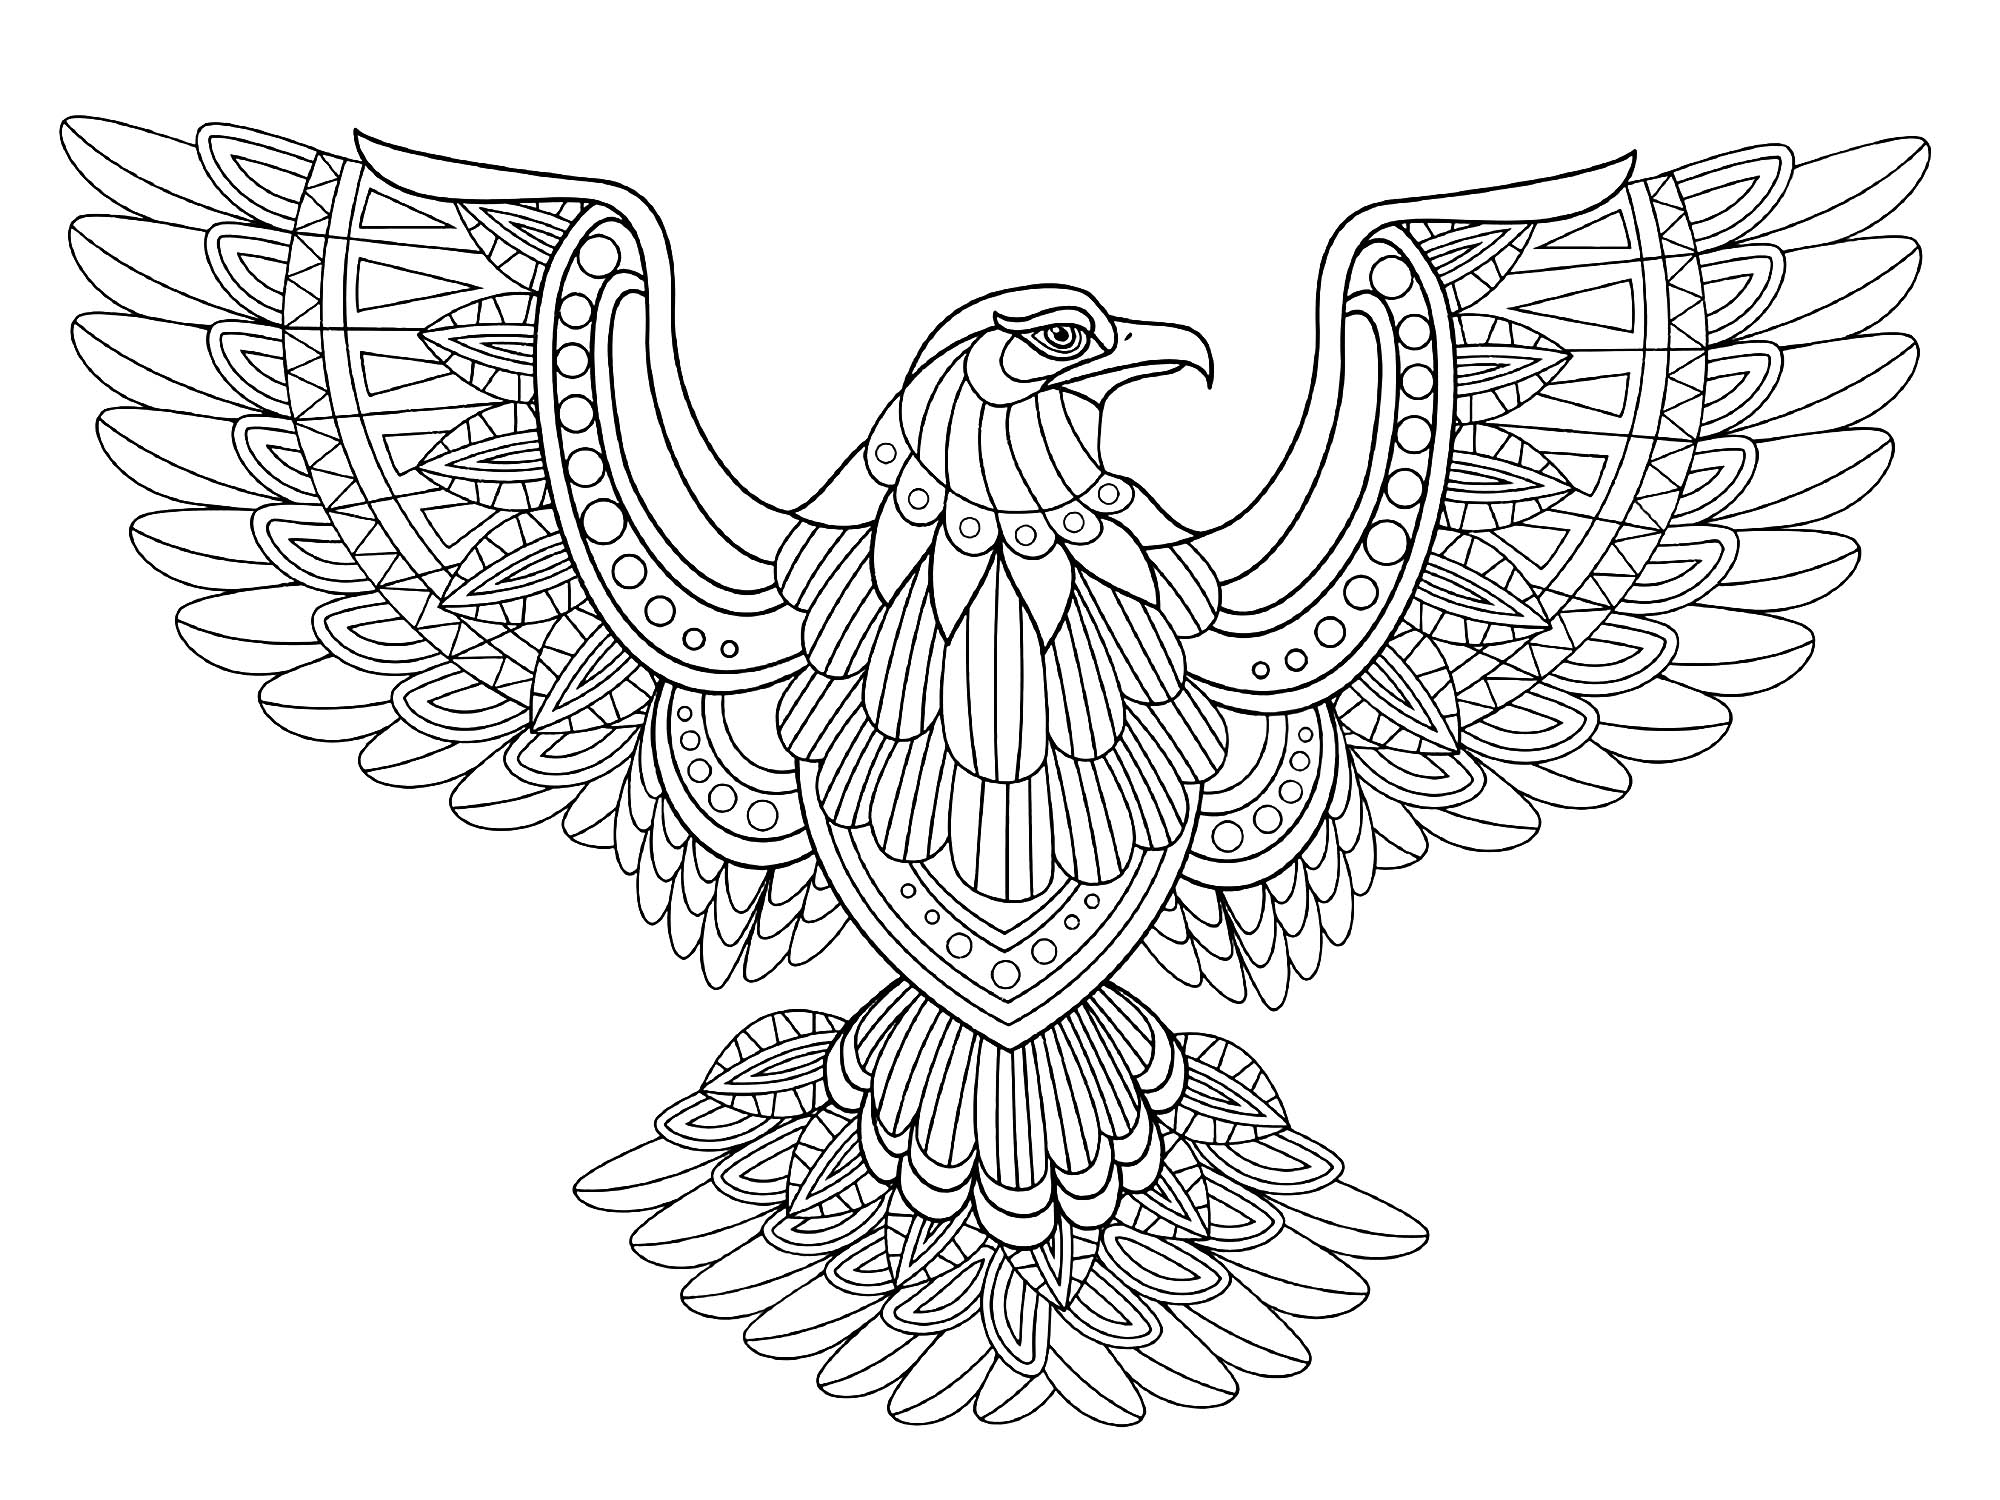 eagle adult coloring pages adult coloring book printable coloring pages coloring pages coloring pages adult eagle